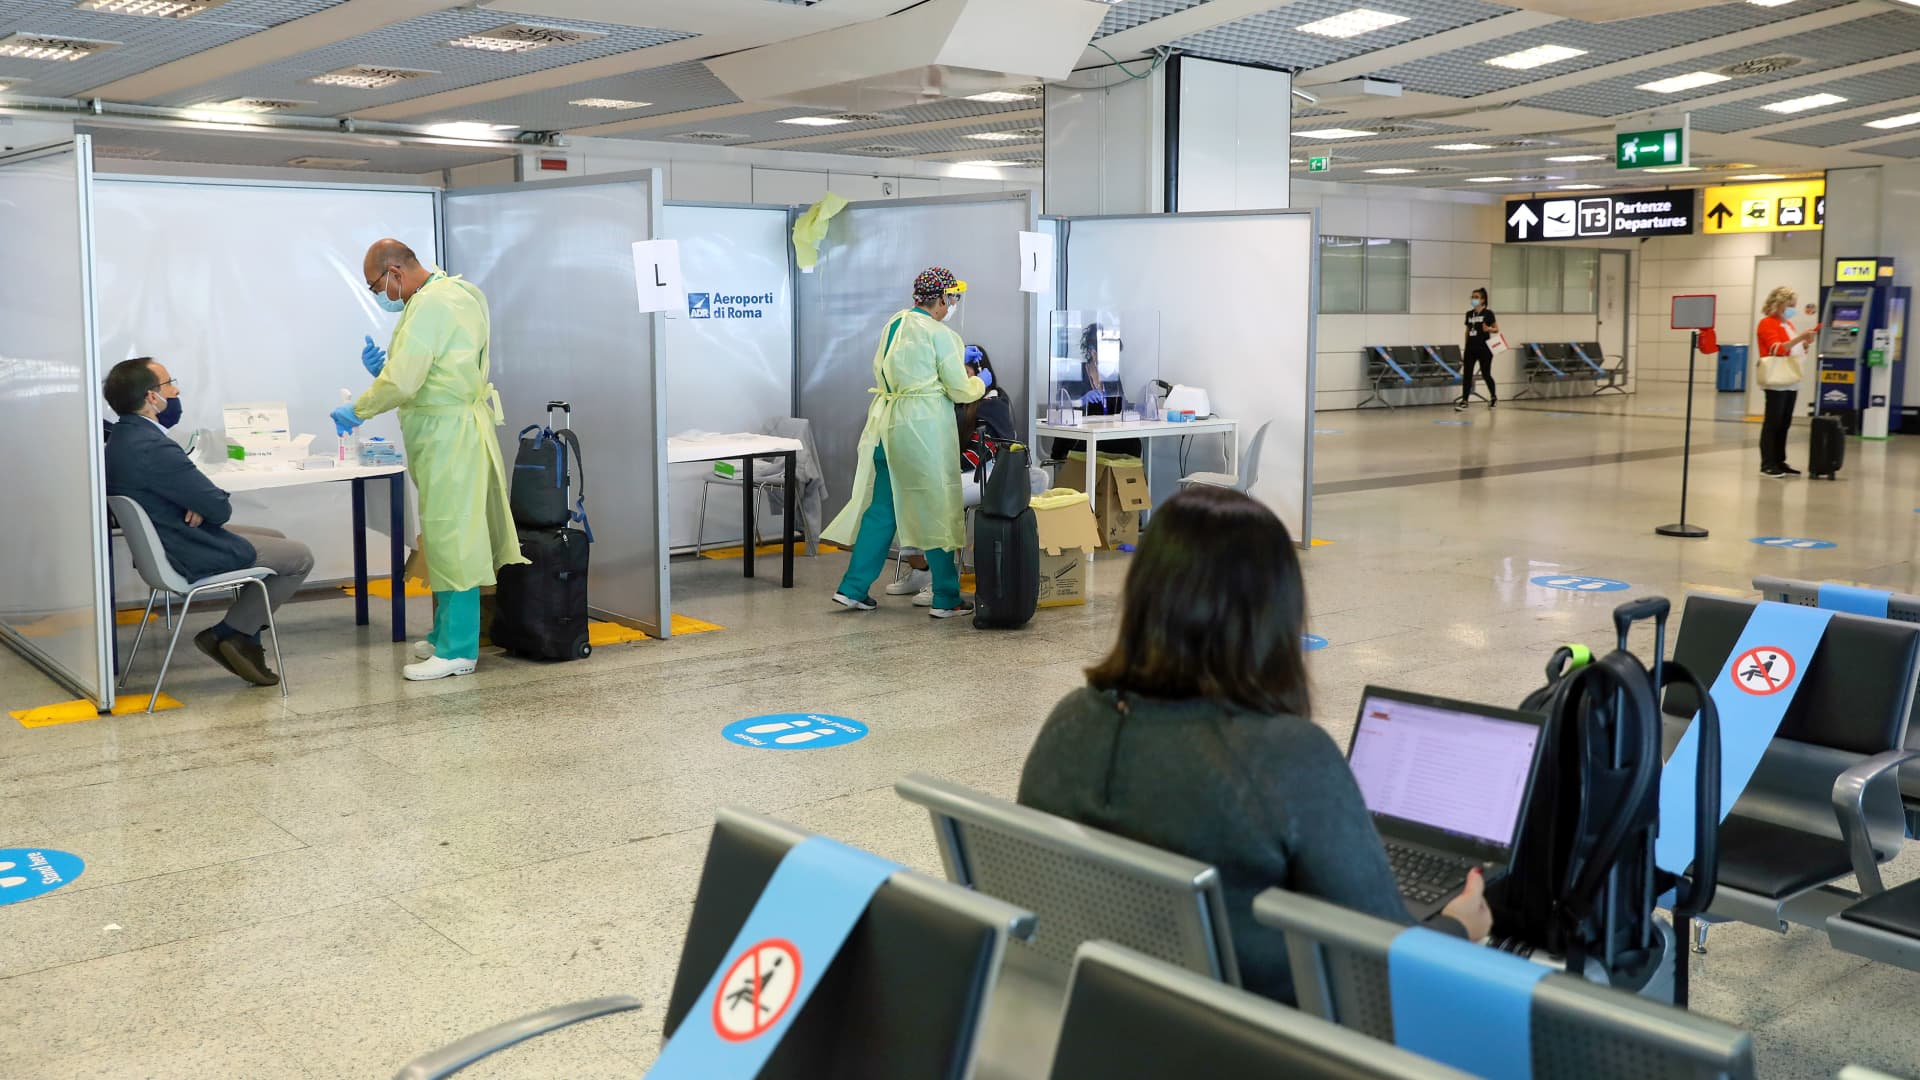 Though airports weren't designed for large-scale medical testing, many set up makeshift facilities last year, such as Rome's Fiumicino International Airport shown here.